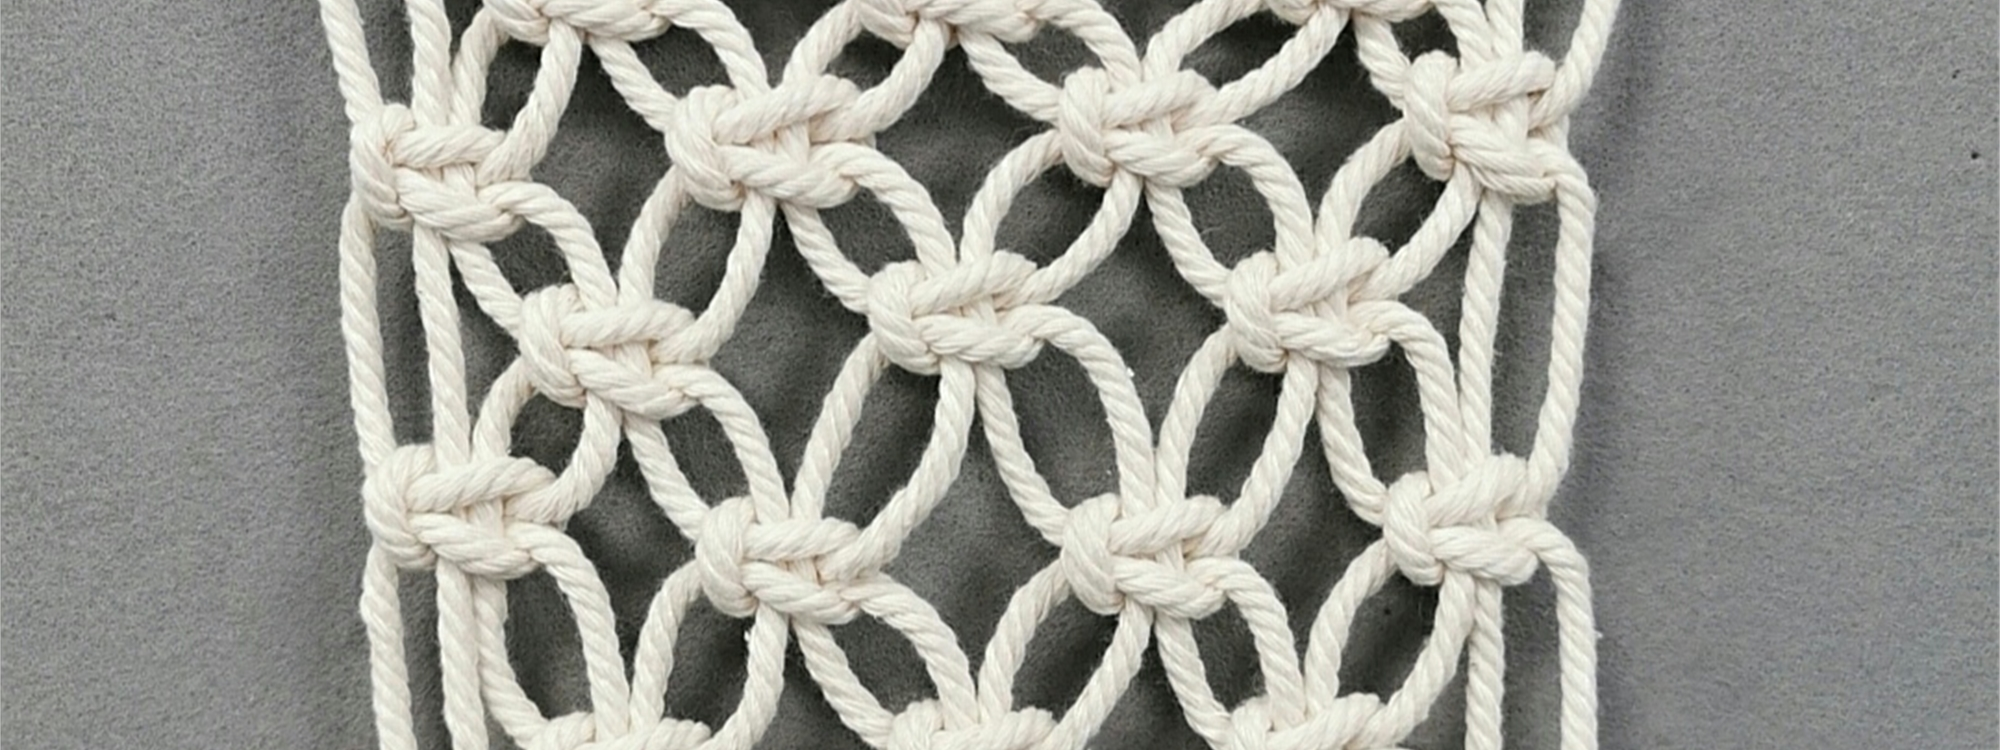 Try Something New: Macrame Workshop